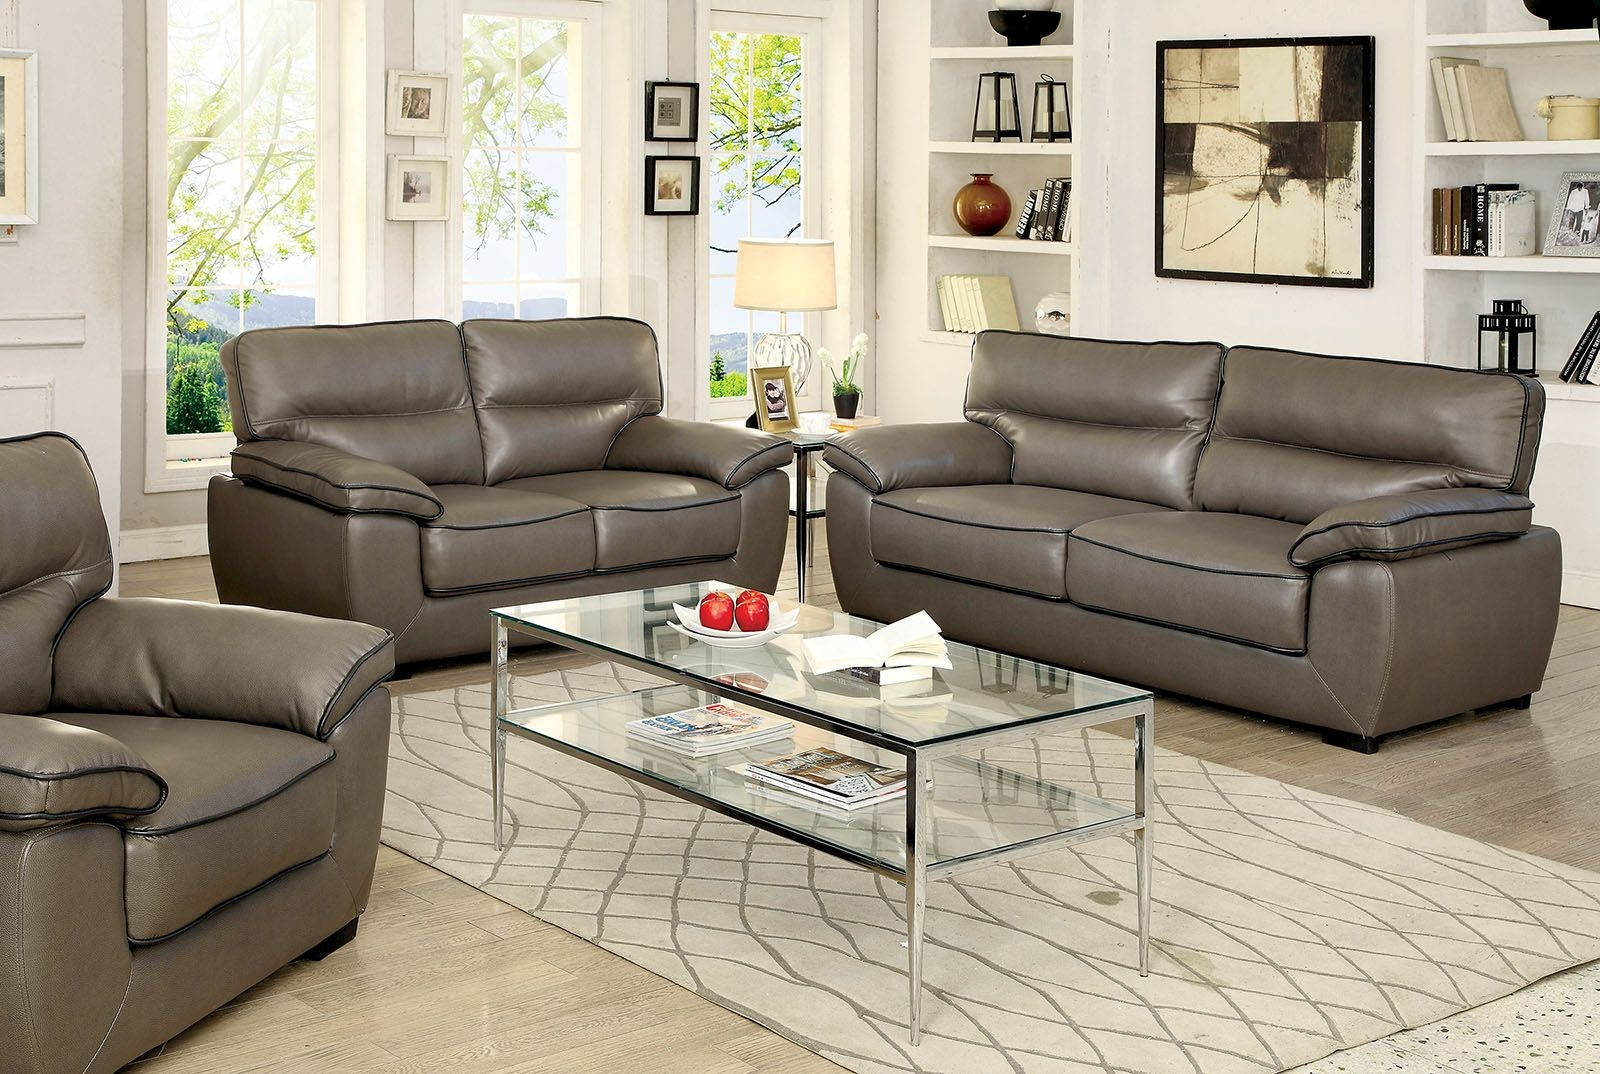 Lennox gray shined faux leather living room set from for Faux leather living room furniture